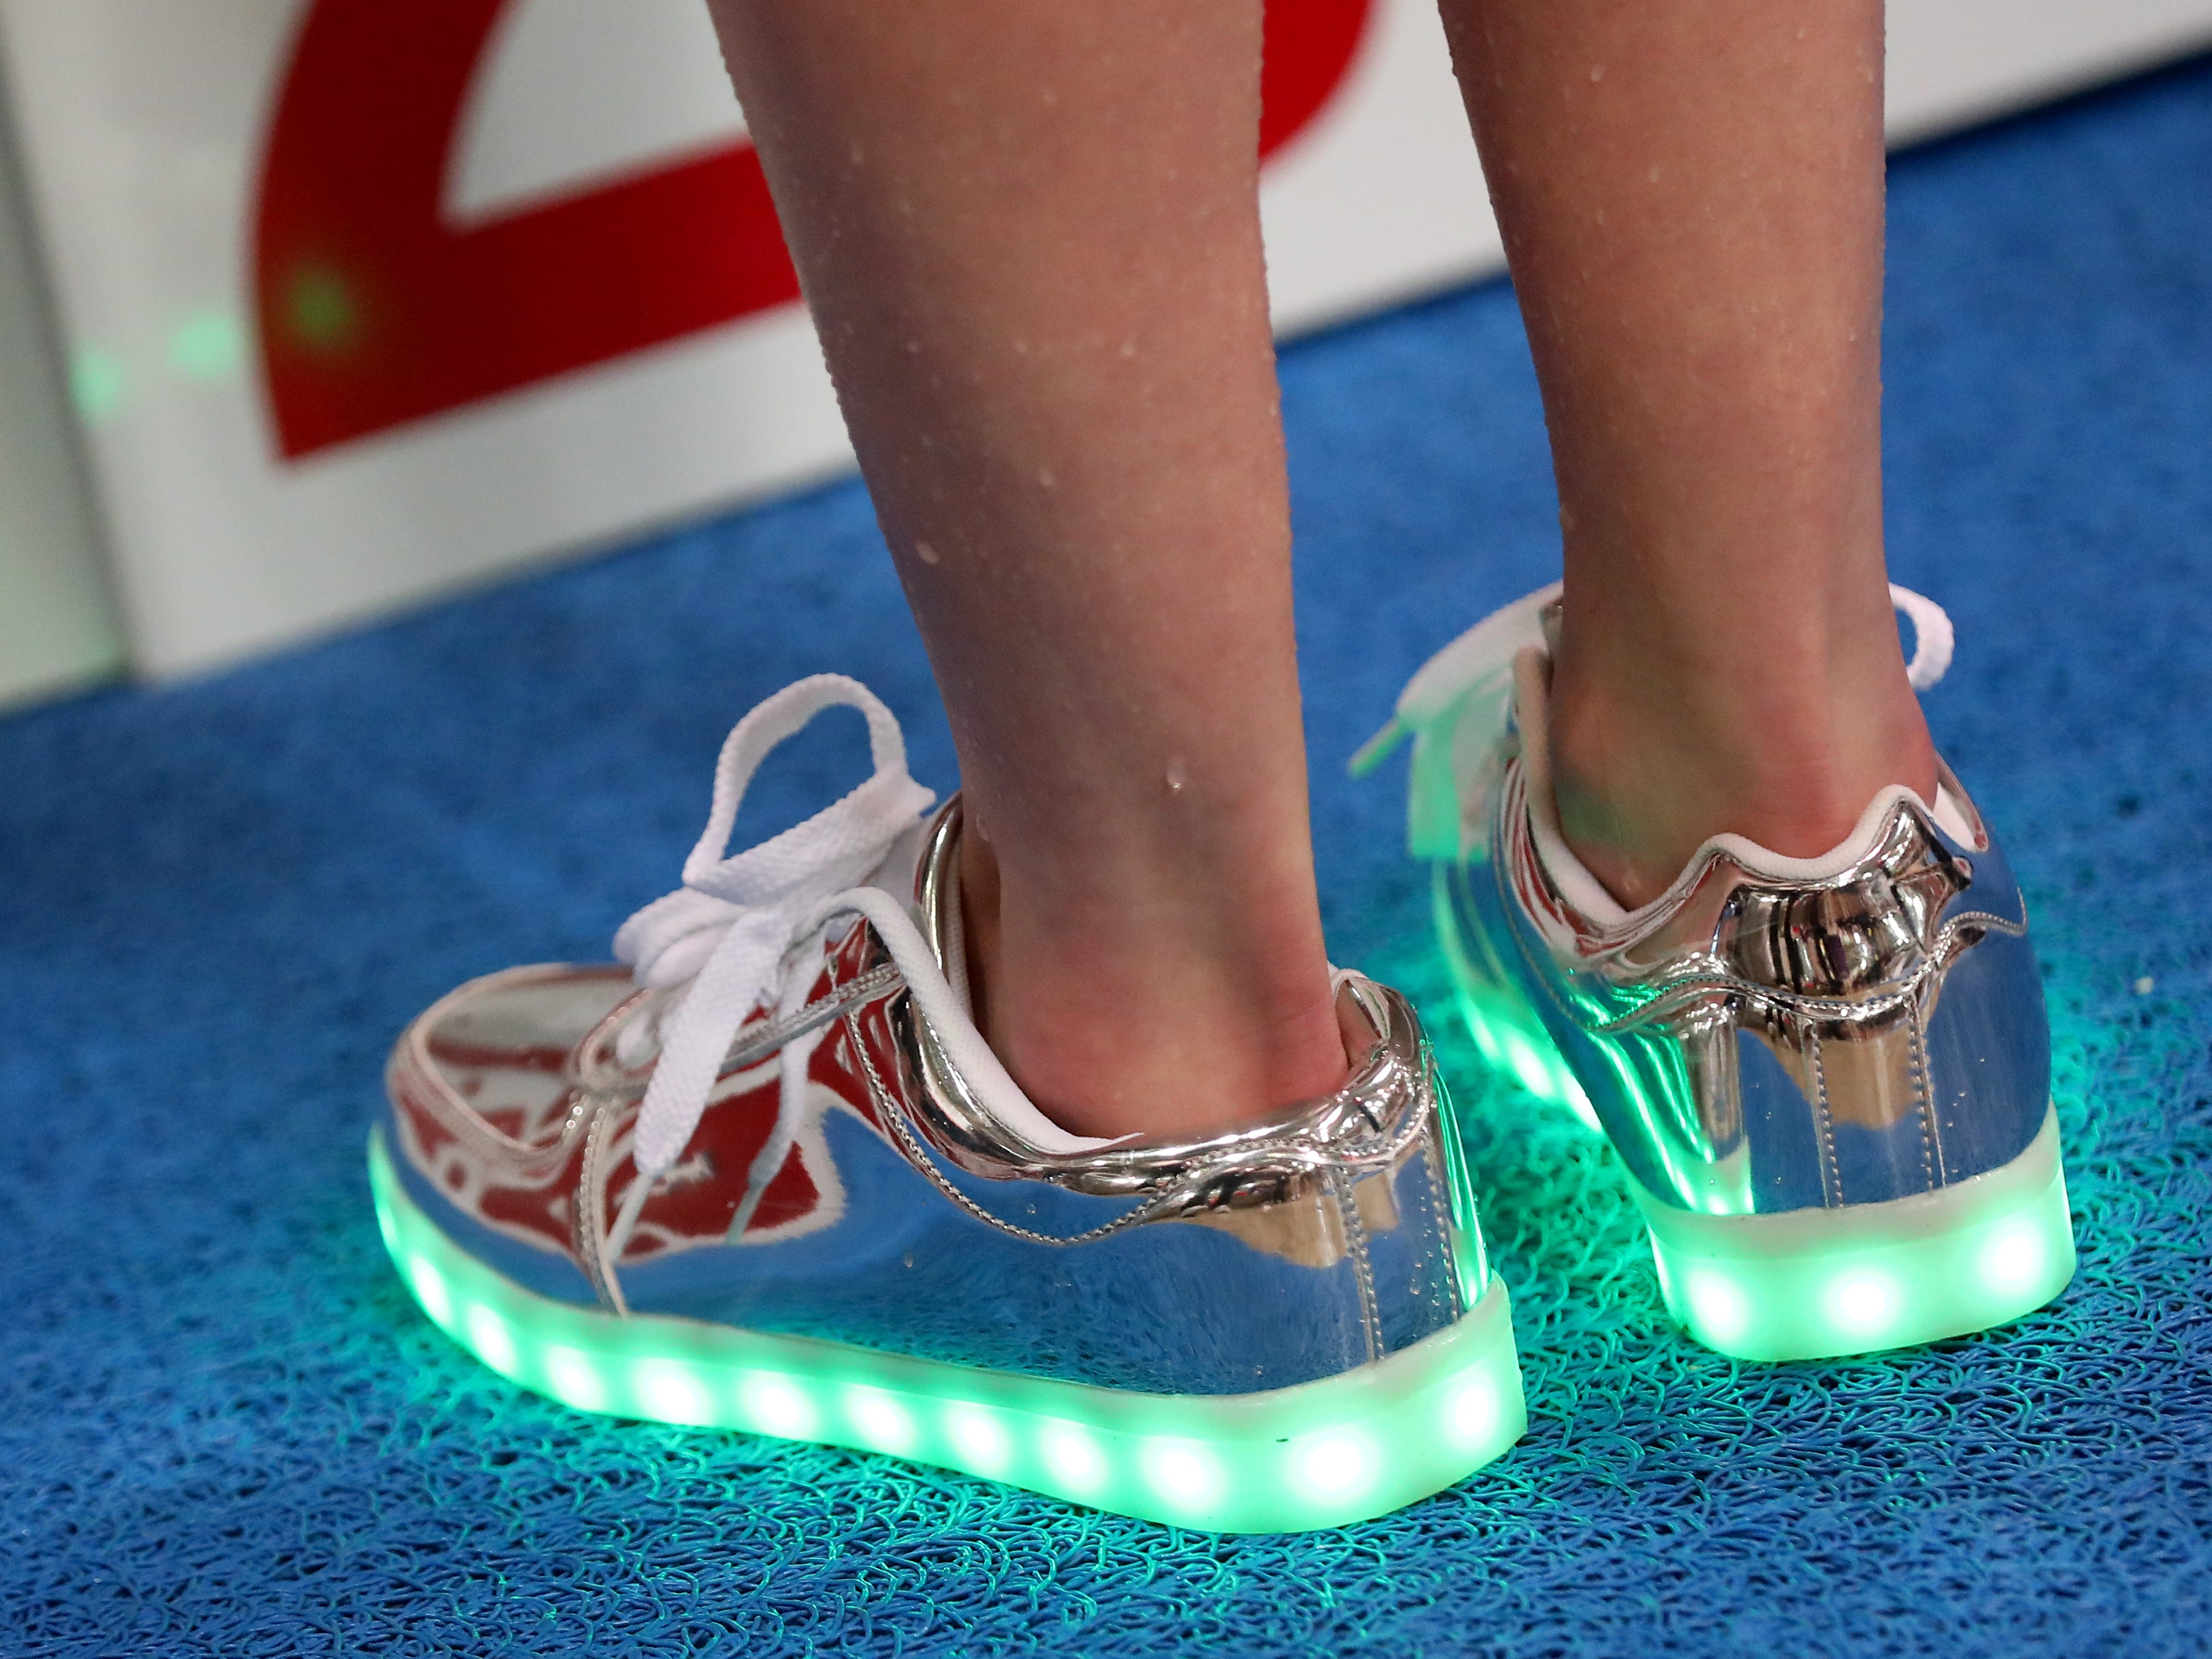 Mason swimmers where wearing these shoes at the OHSAA state swimming and diving championships in Canton Ohio, Friday, Feb. 23, 2019.